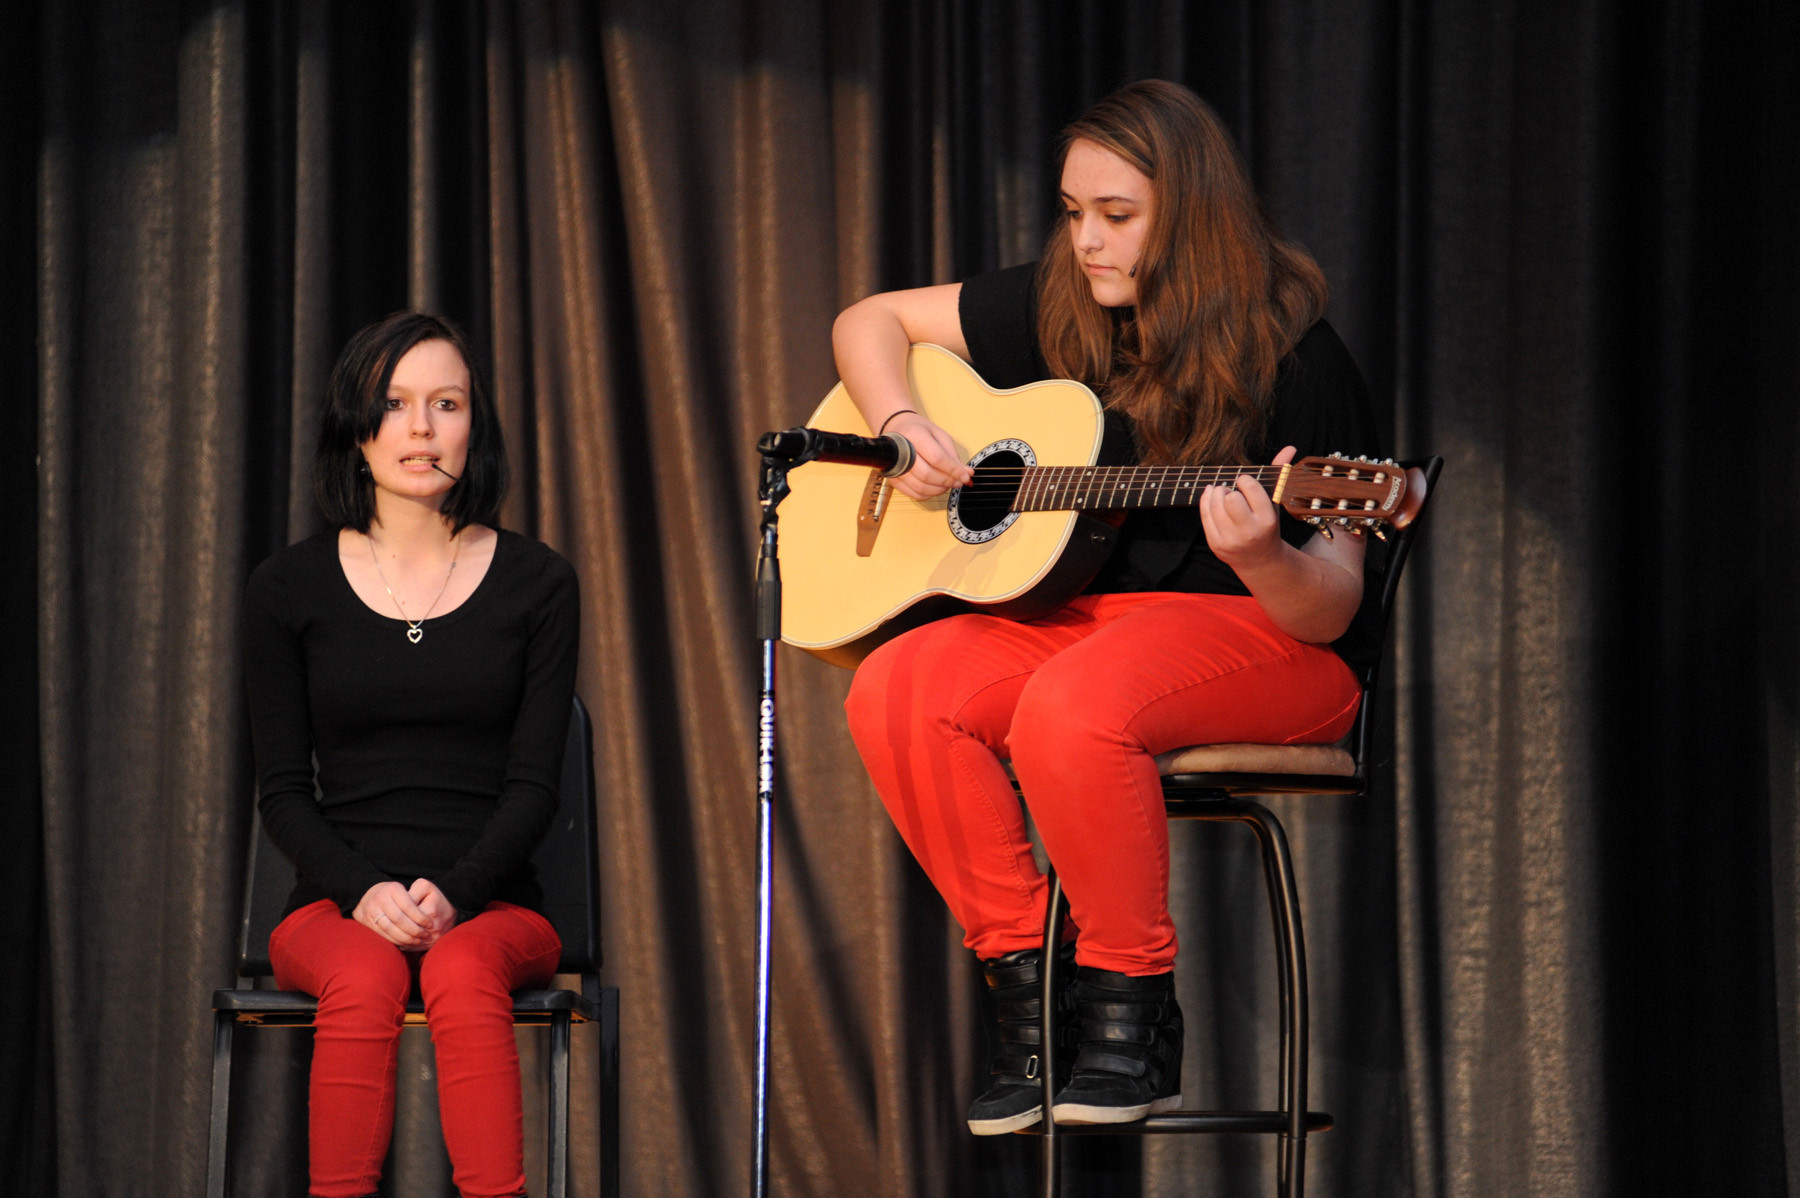 Carmela Cipriano performed with her Wellington C. Mepham High School classmate Anna Nicchia at this year�s talent show on April 11.